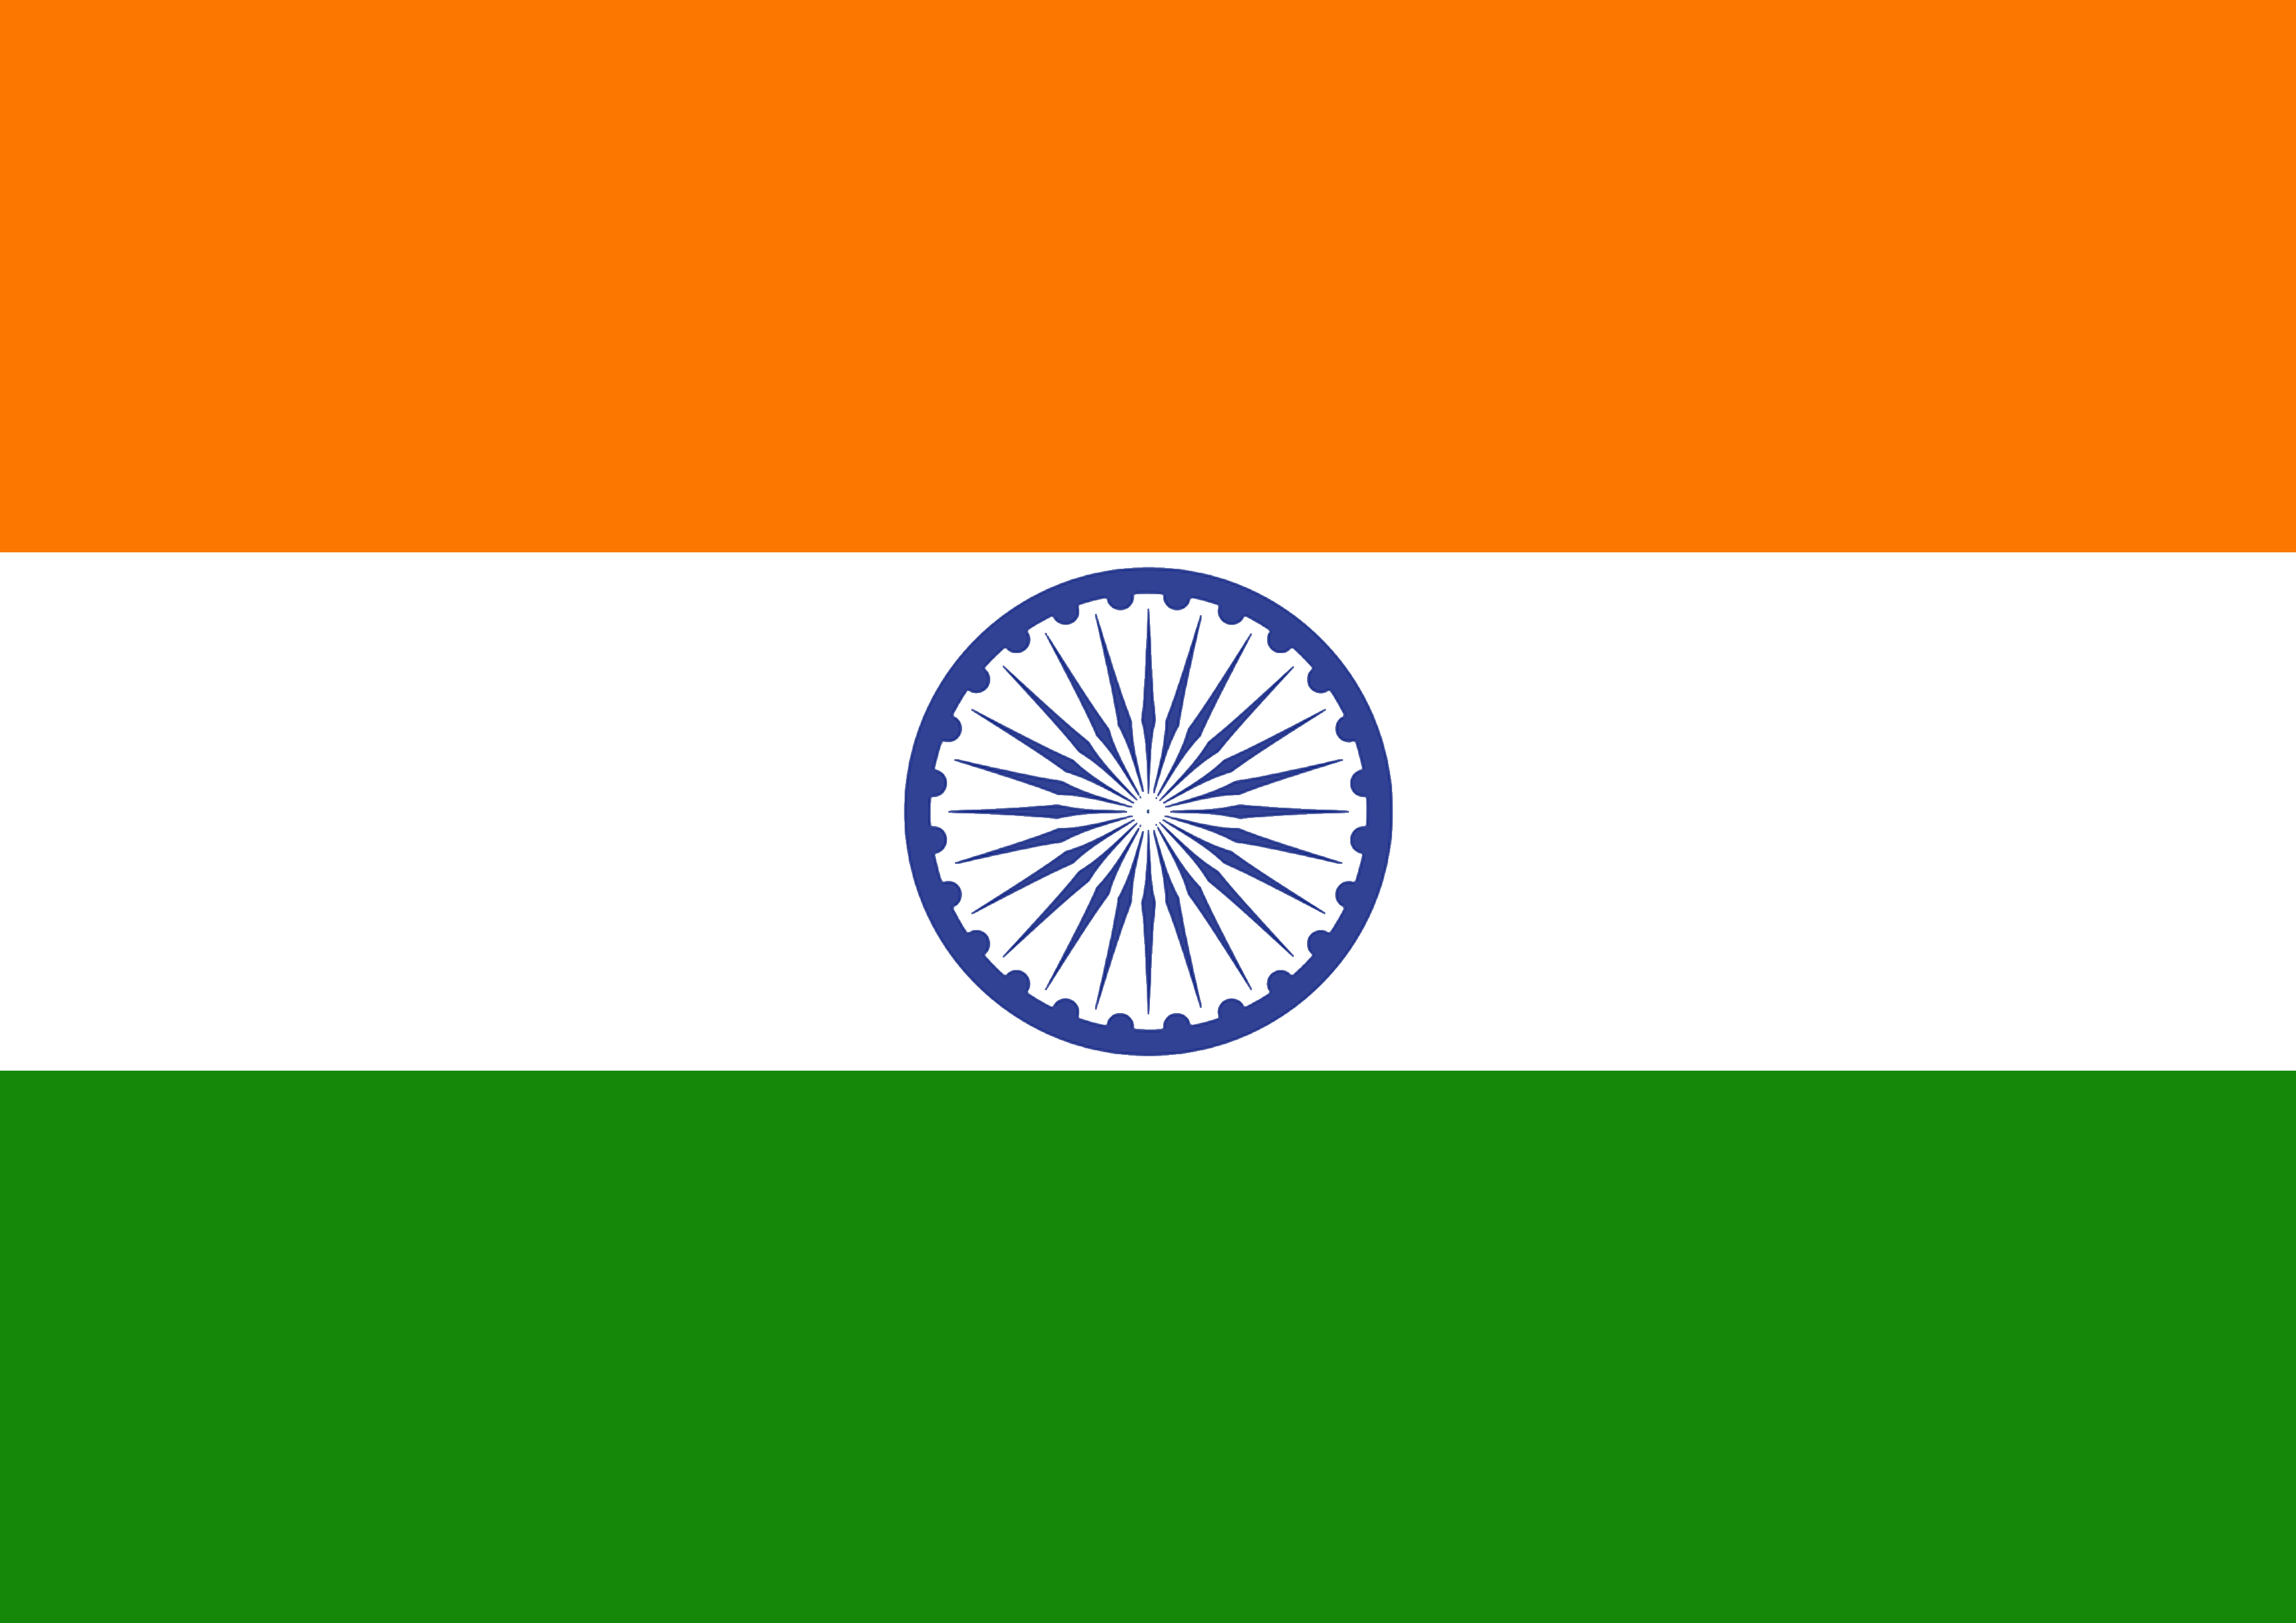 HQ Flag Of India Wallpapers | File 857.23Kb